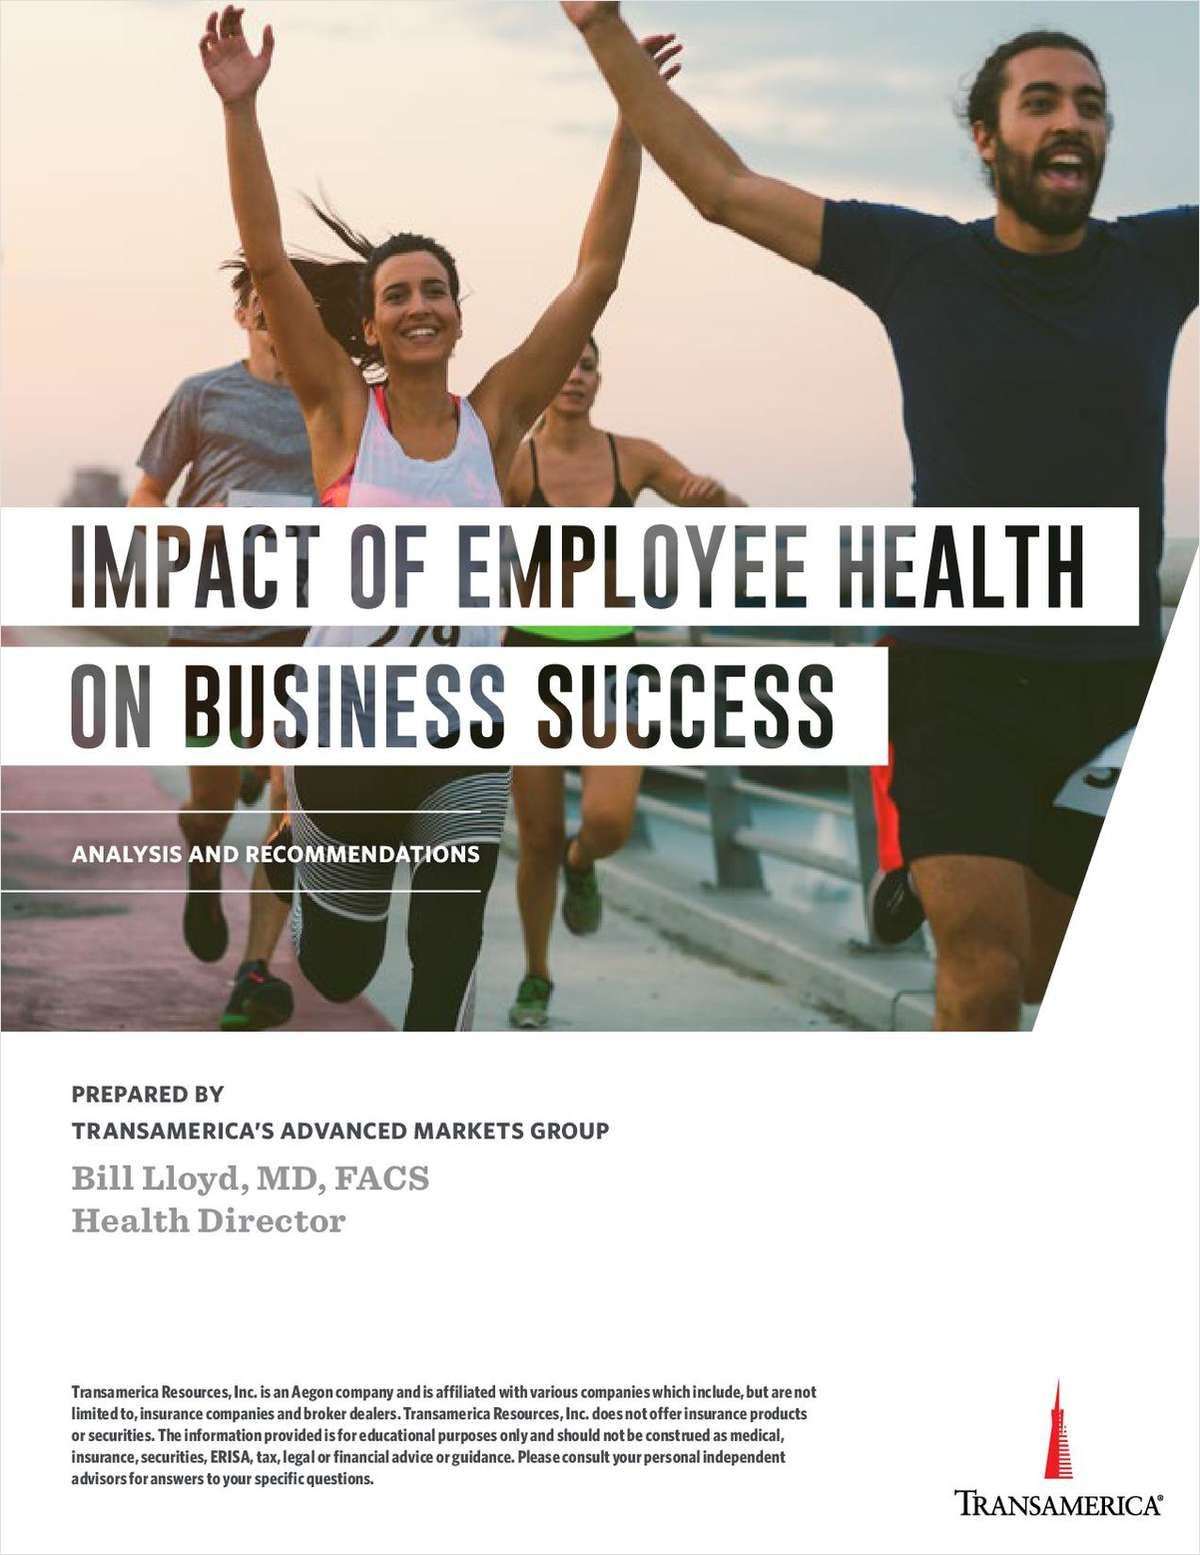 Impact of Employee Health on Business Success: Analysis and Recommendations